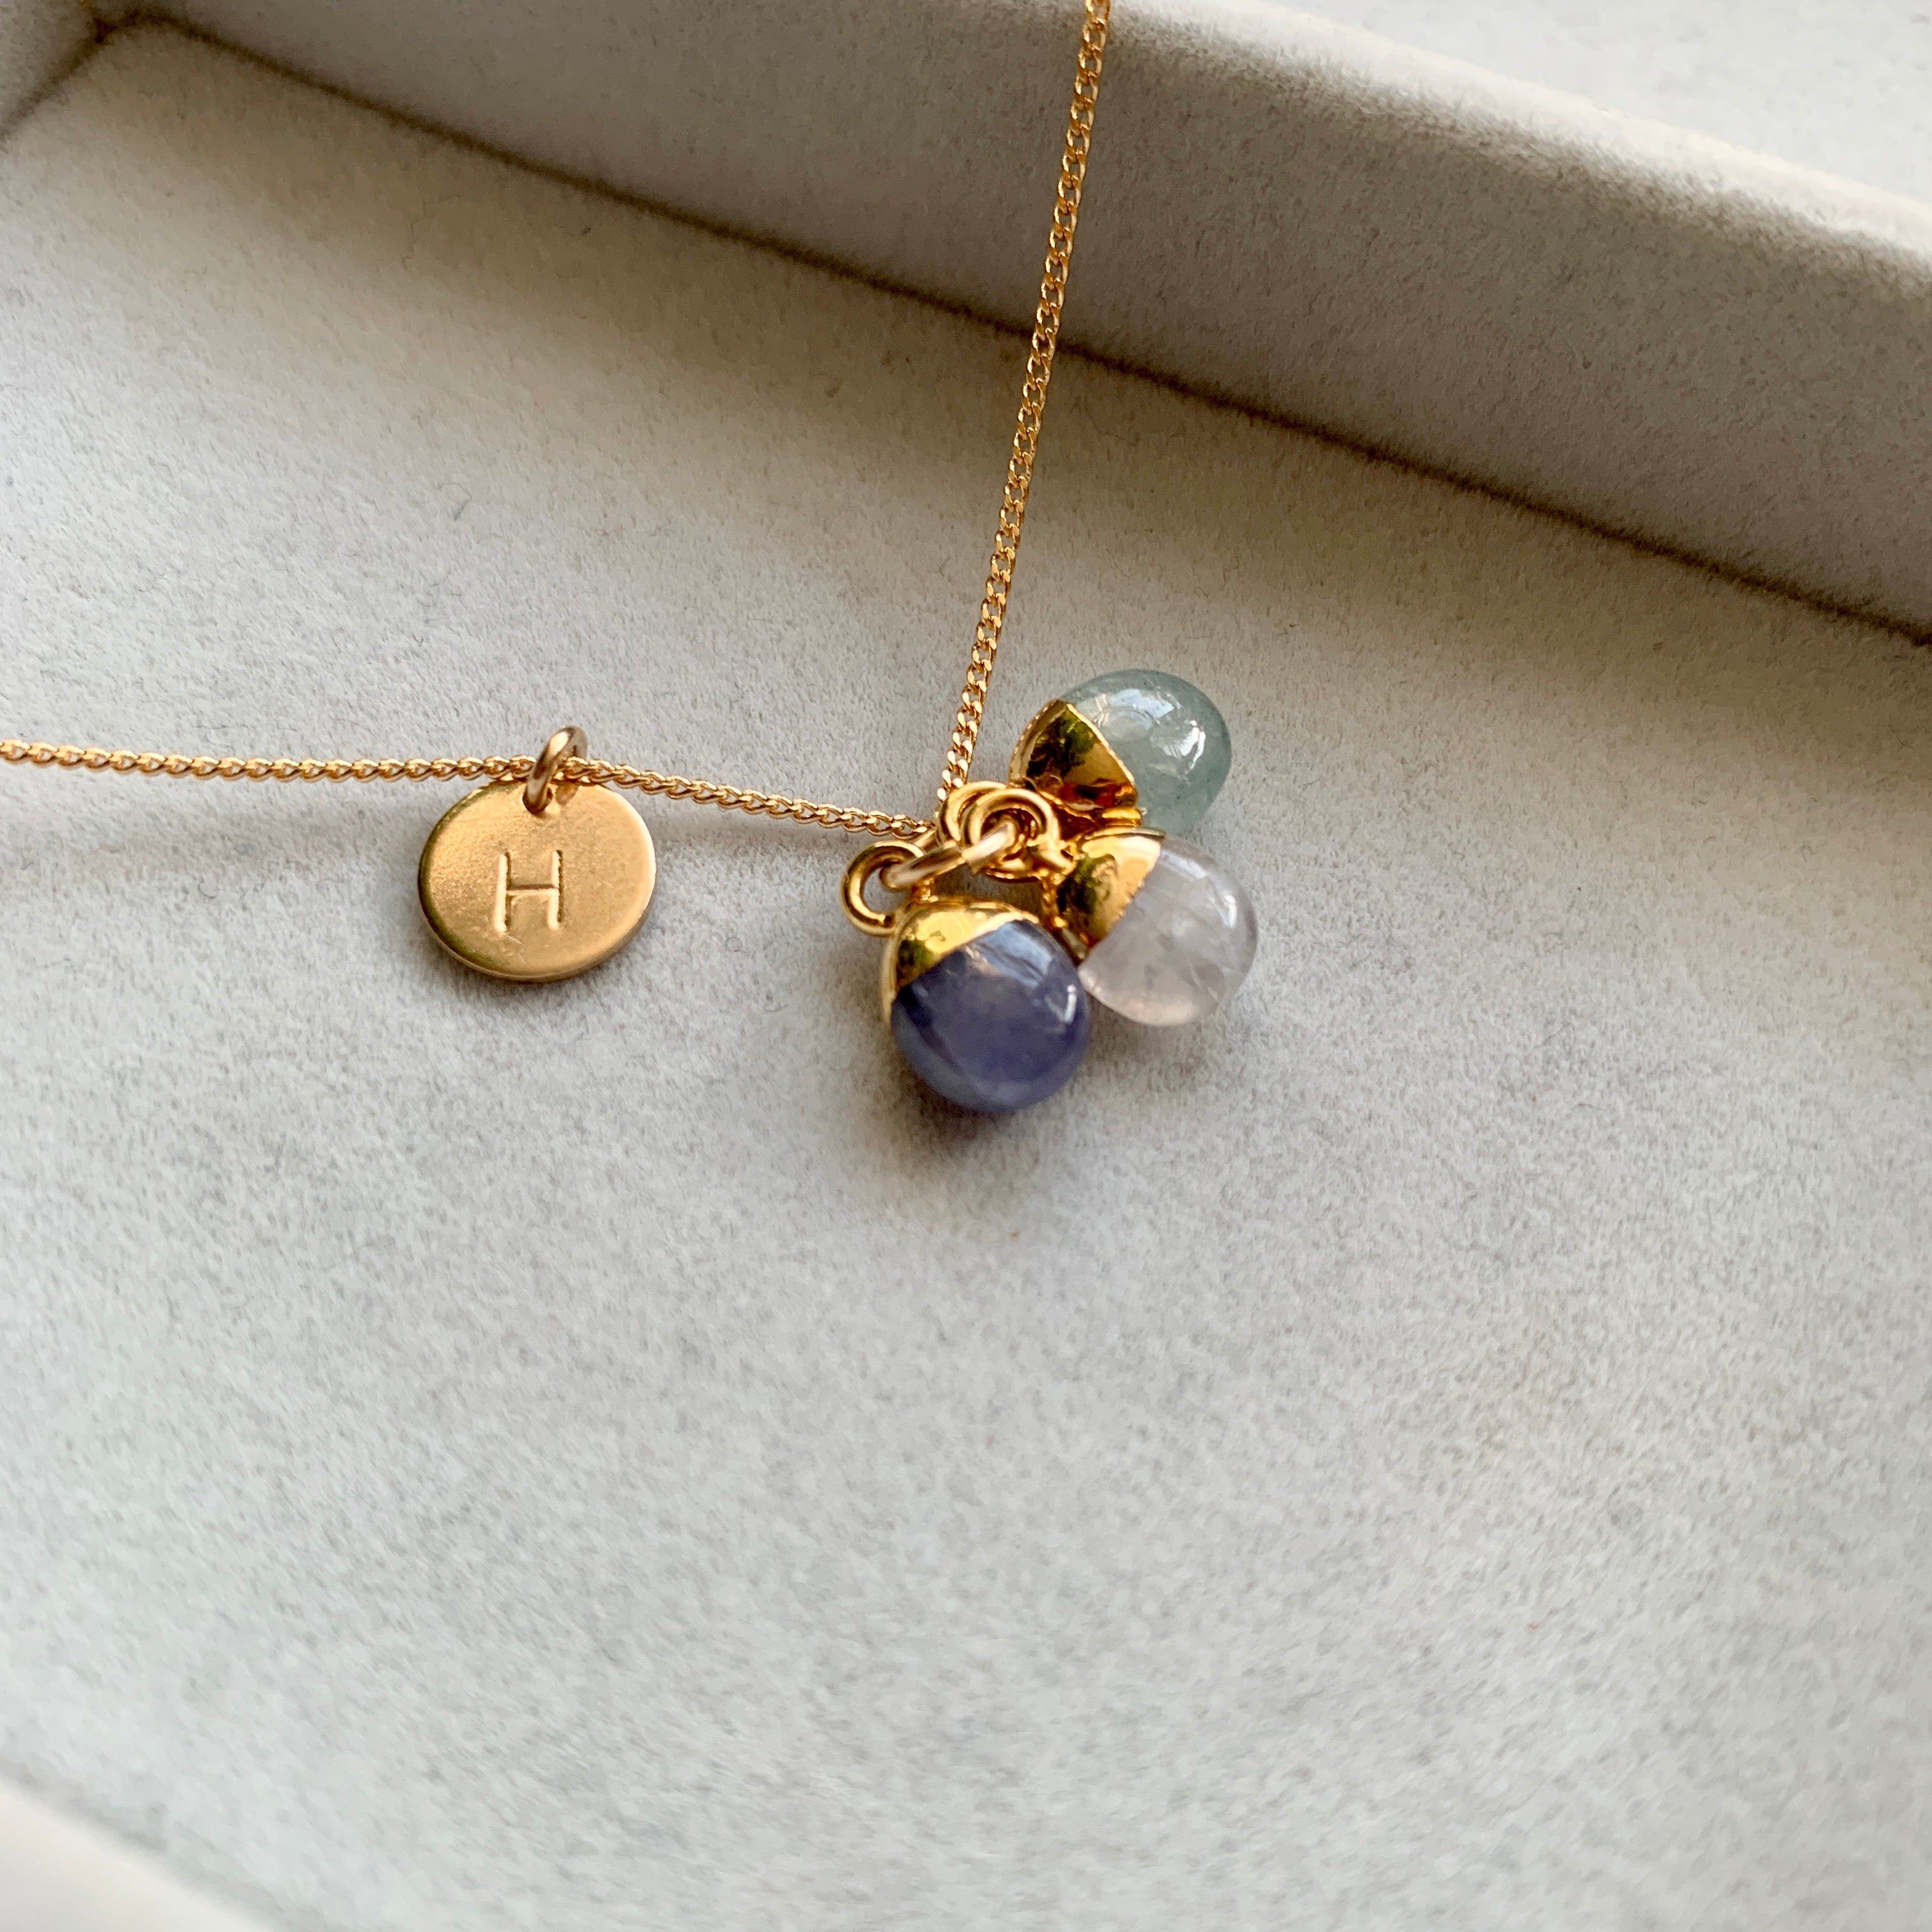 Personalised Family Birthstone Triple Necklace - Tiny Tumbled (Gold Plated) - Decadorn